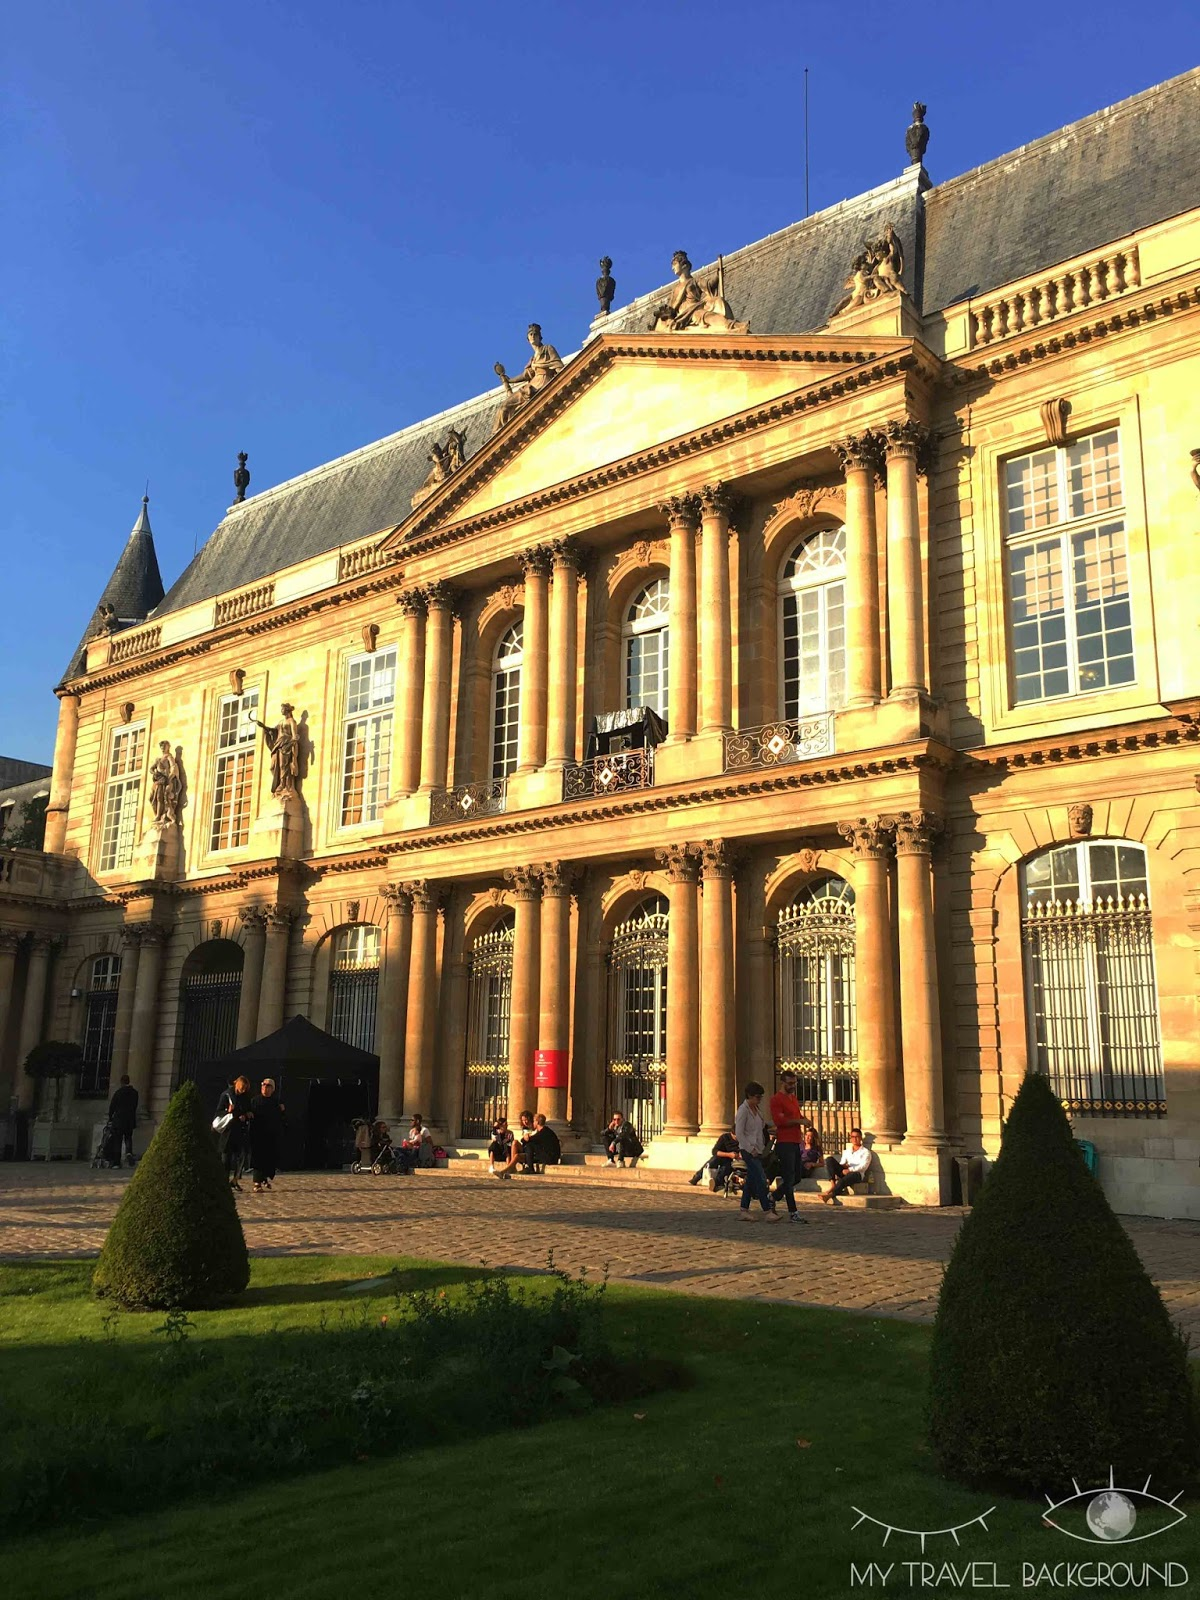 My Travel Background : #ParisPromenade, Le Marais - Les Archives Nationales